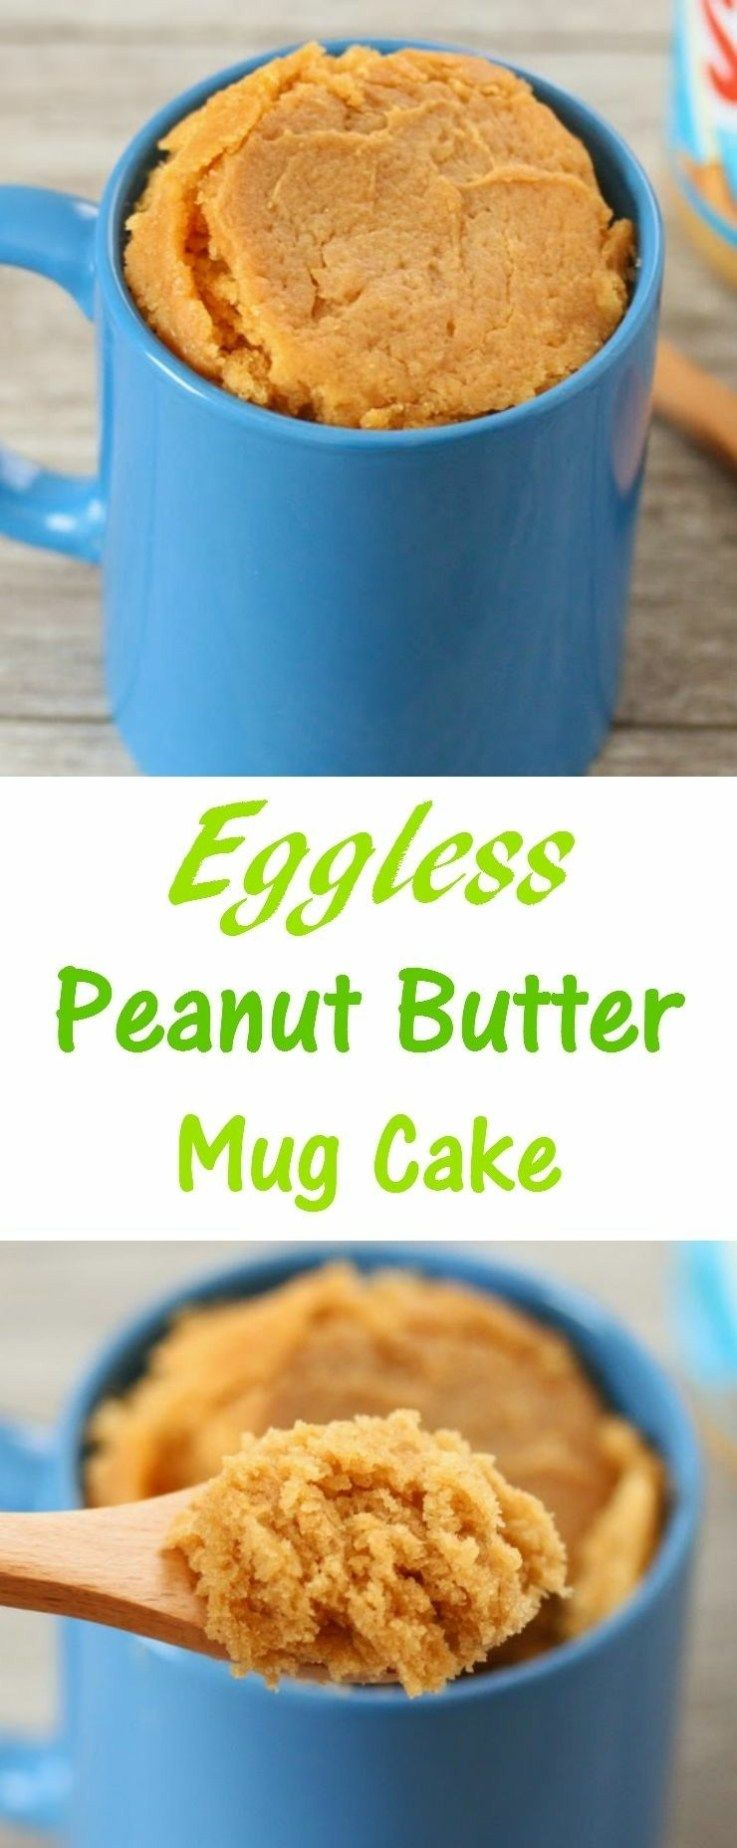 28 Mug Cakes for Personalized Birthdays | Decor Dolphin